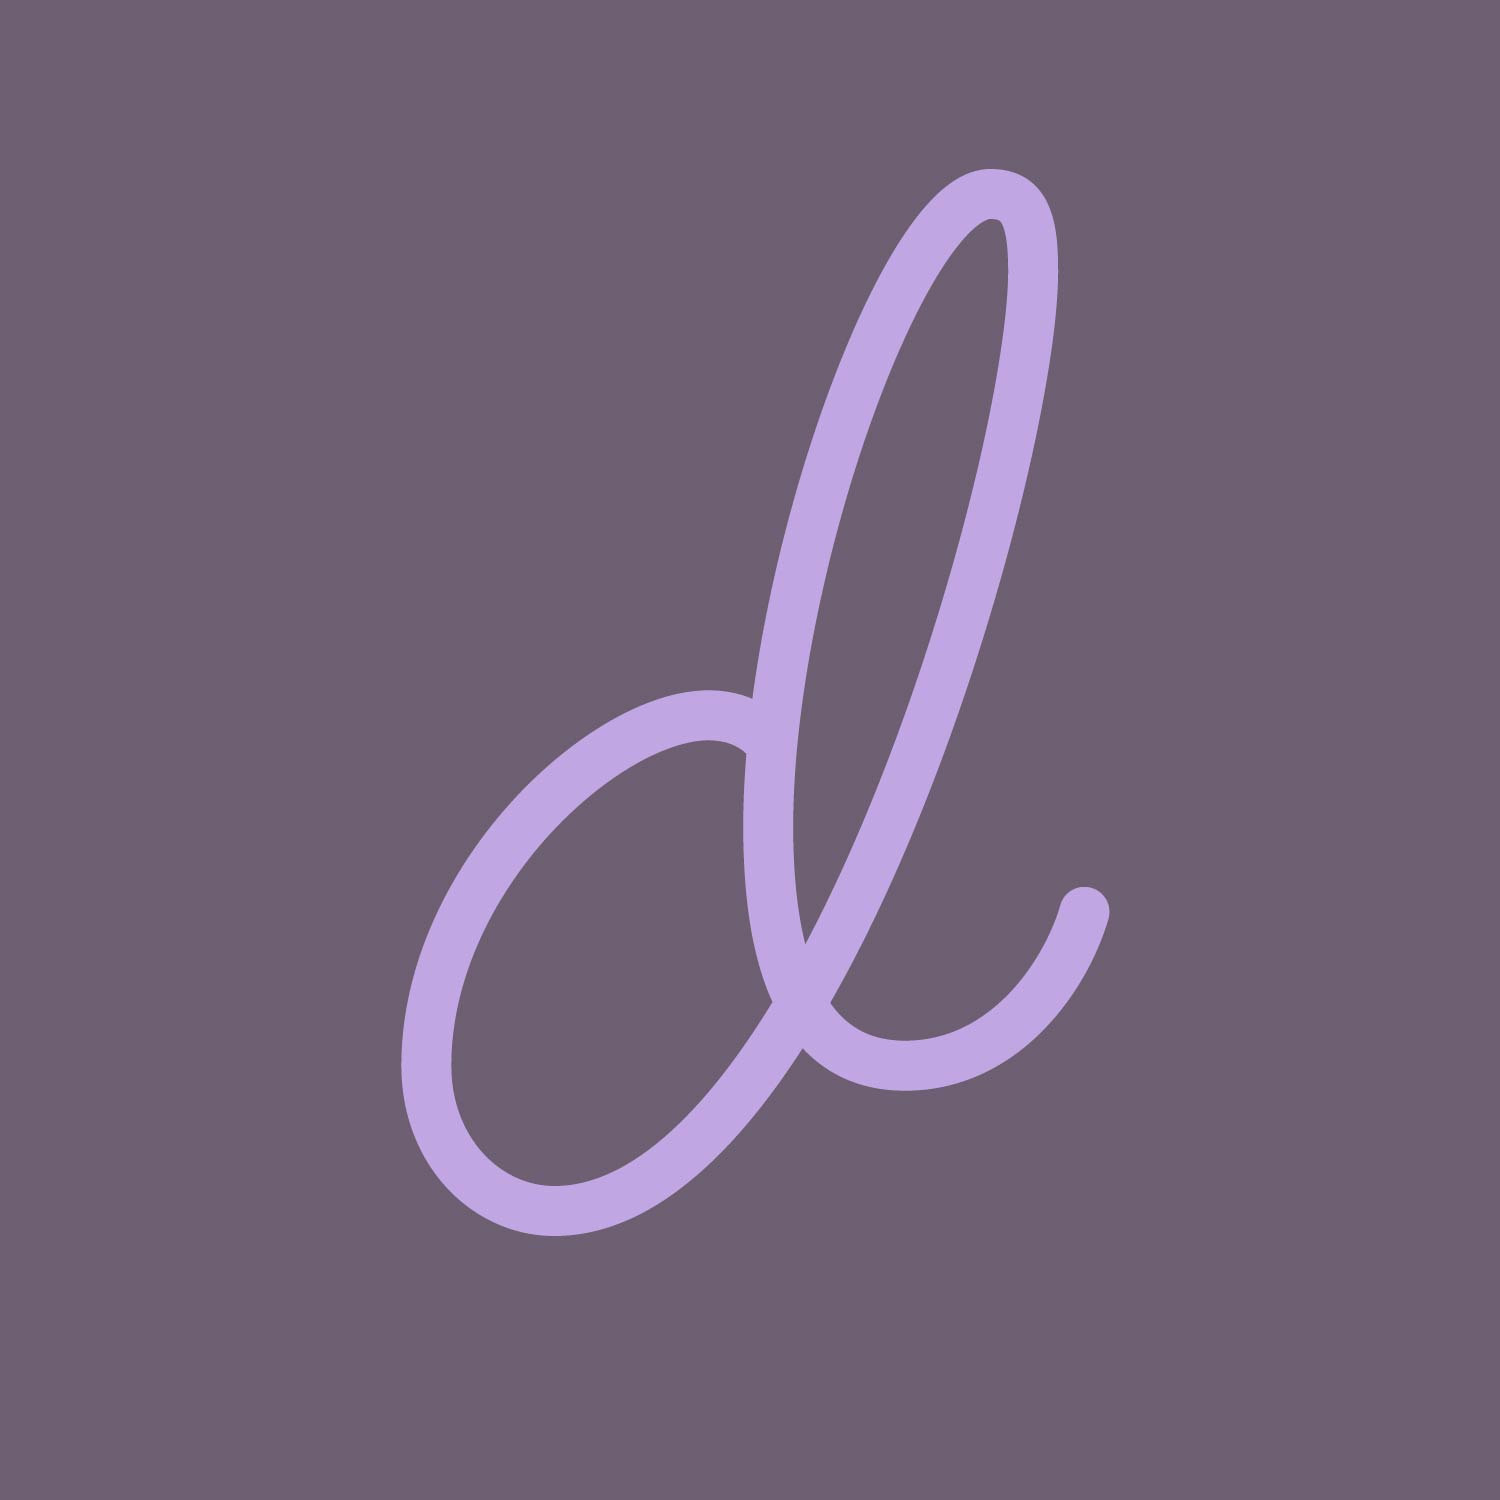 moonlike scripted light purple letter d on a dark purple background